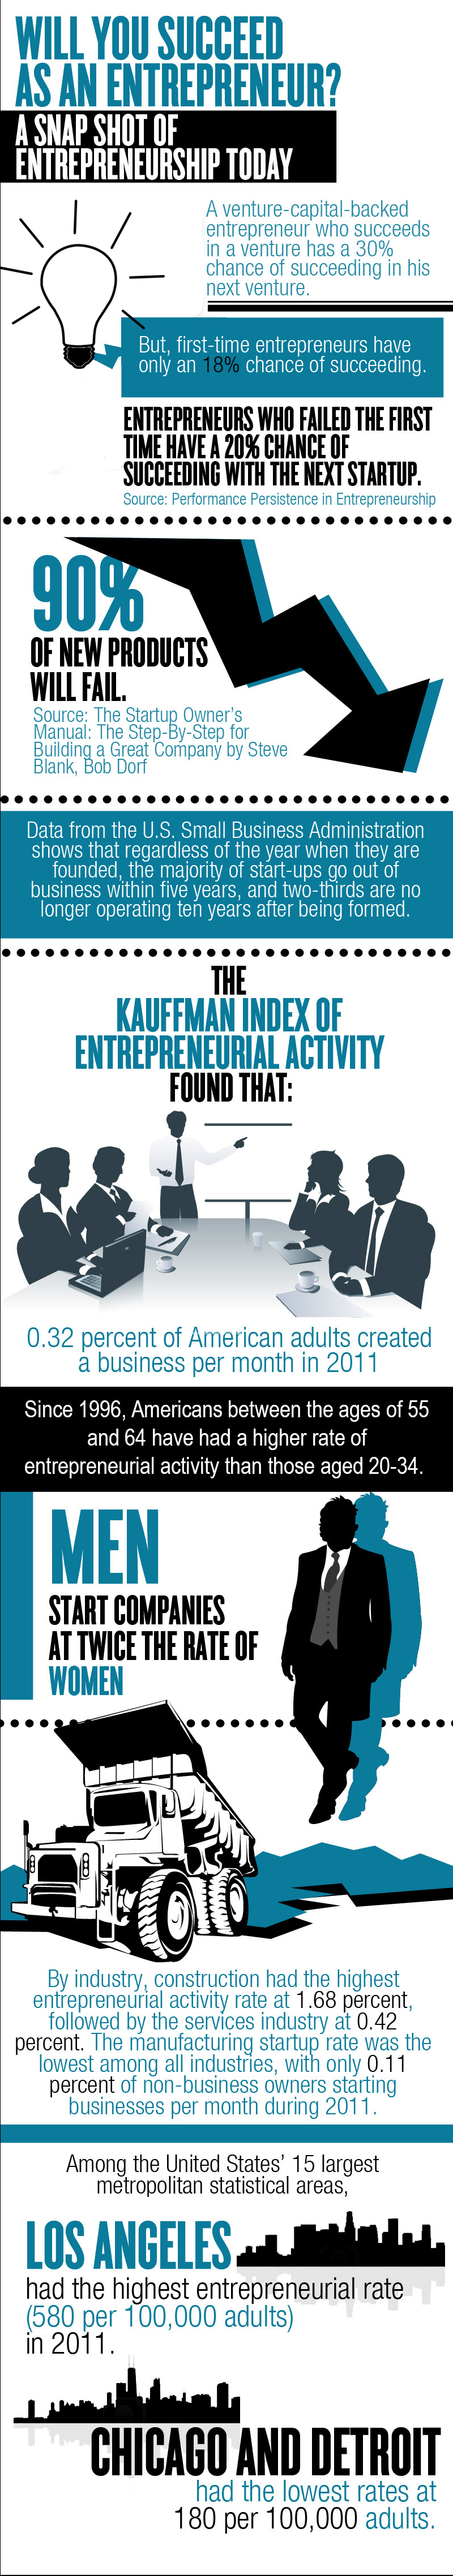 the-state-of-entrepreneurship-today_5070a3b28fd6f